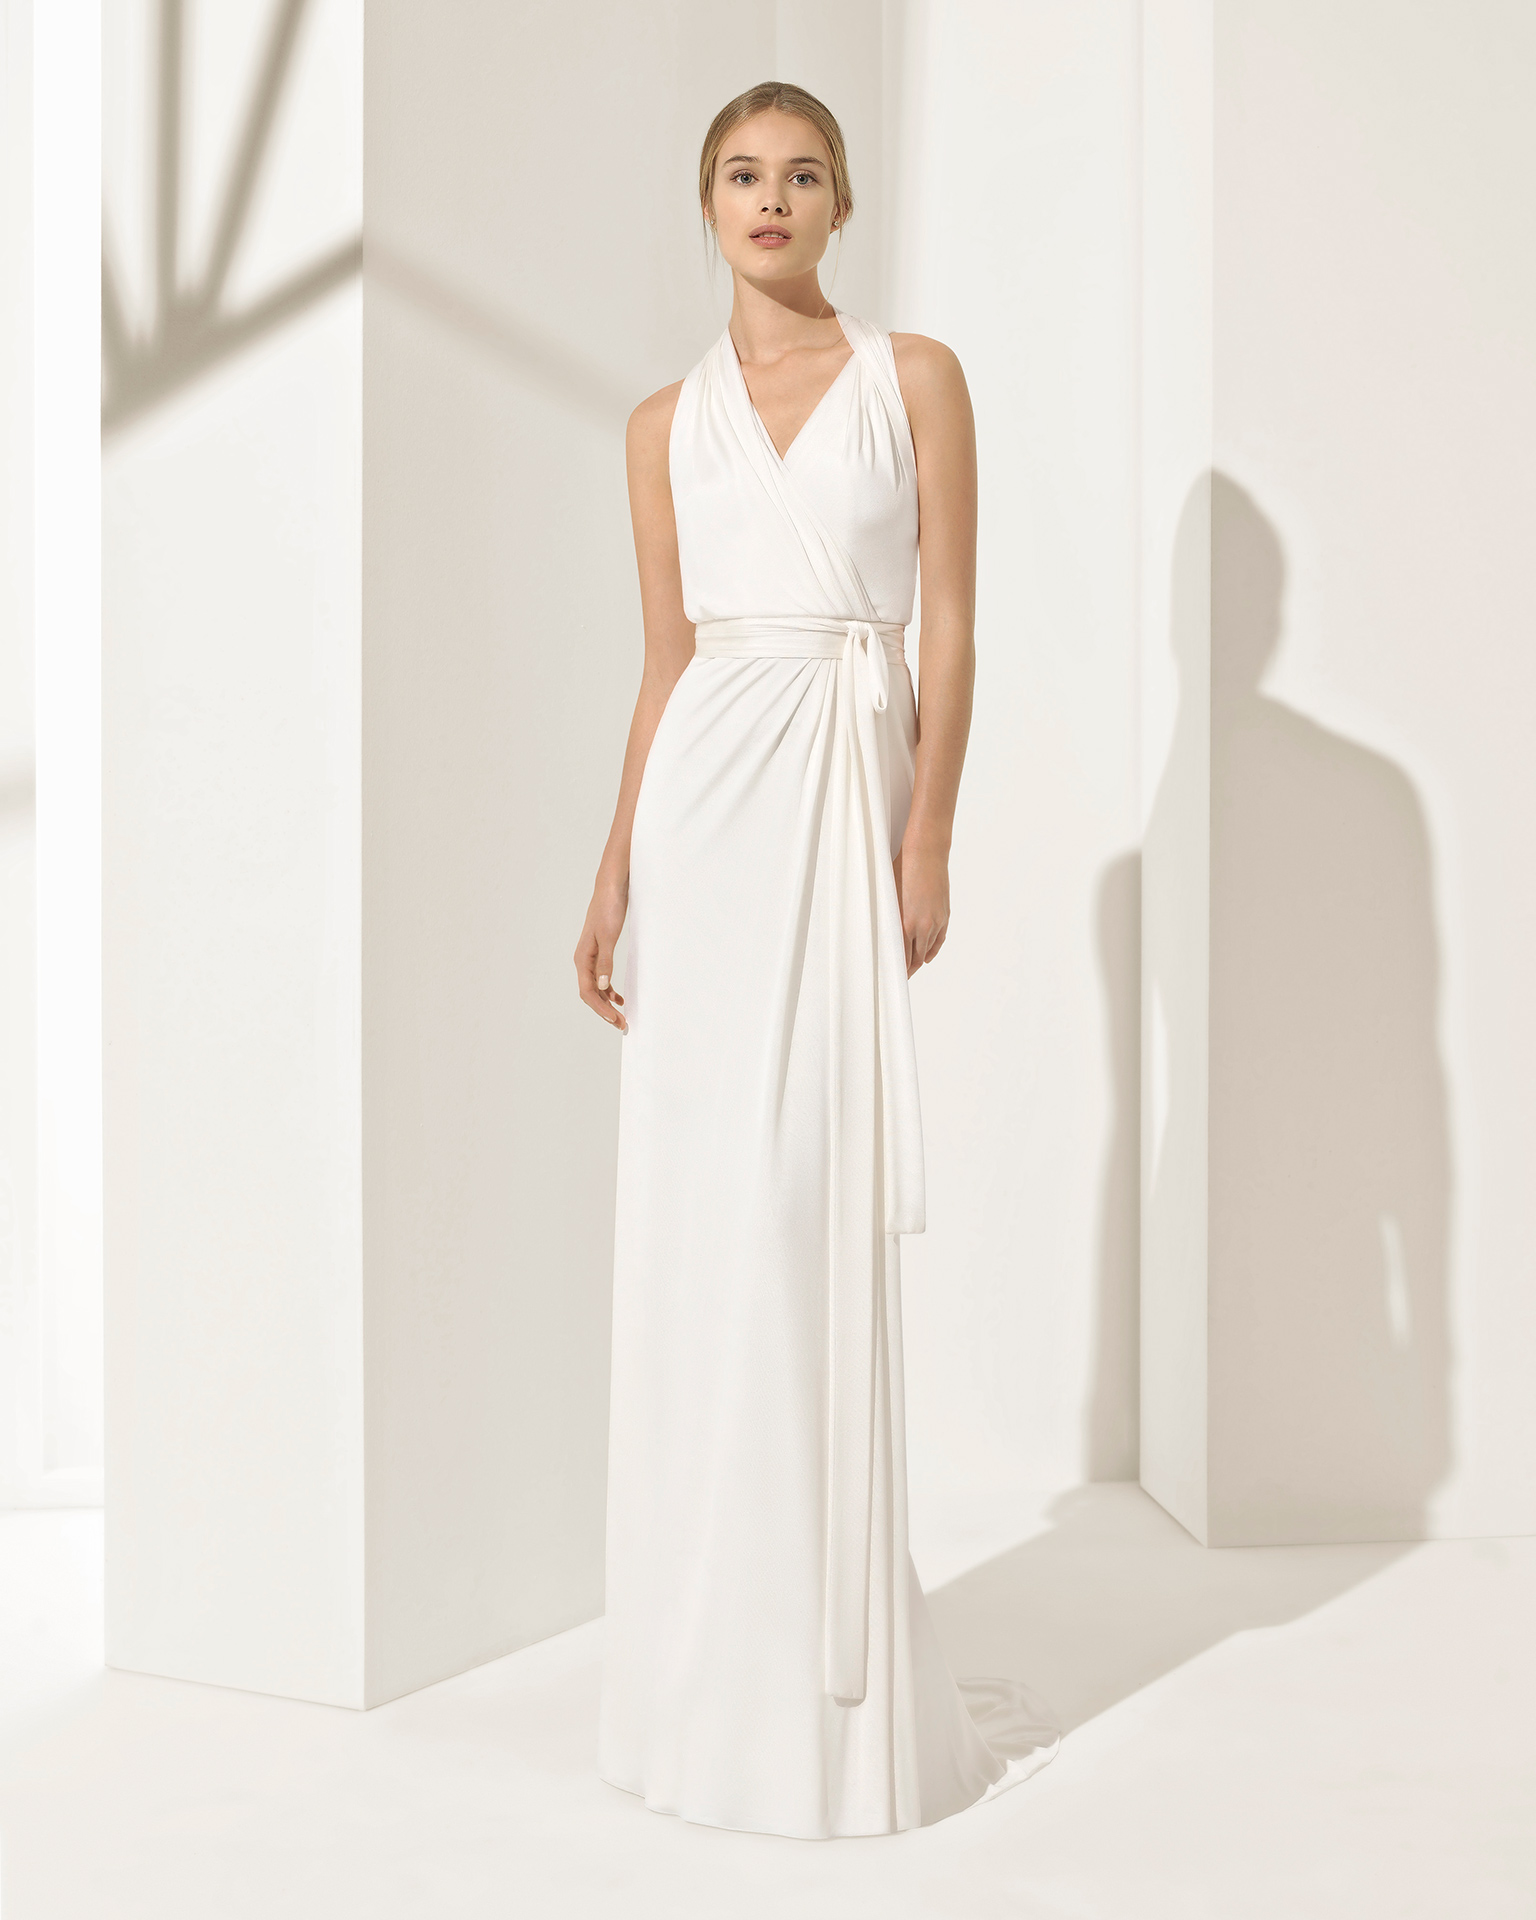 5cd4caa367 Pronovias stockists include Kathy De Stafford Bridal in Dublin and Tipperary